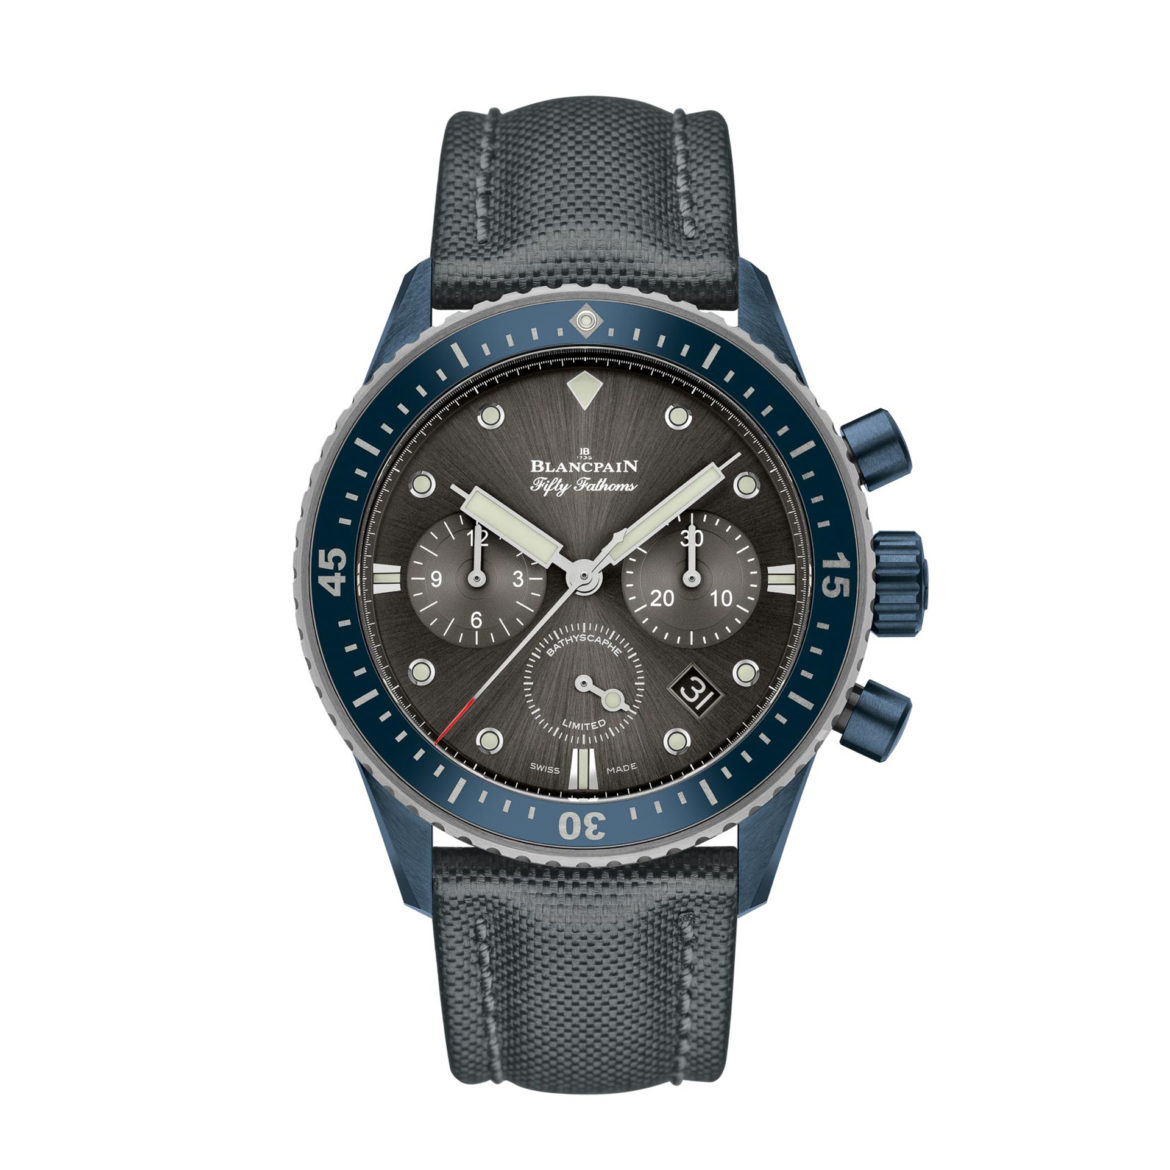 Blancpain Fifty Fathoms Bathyscaphe Flyback Chronograph Blancpain Ocean Commitment II